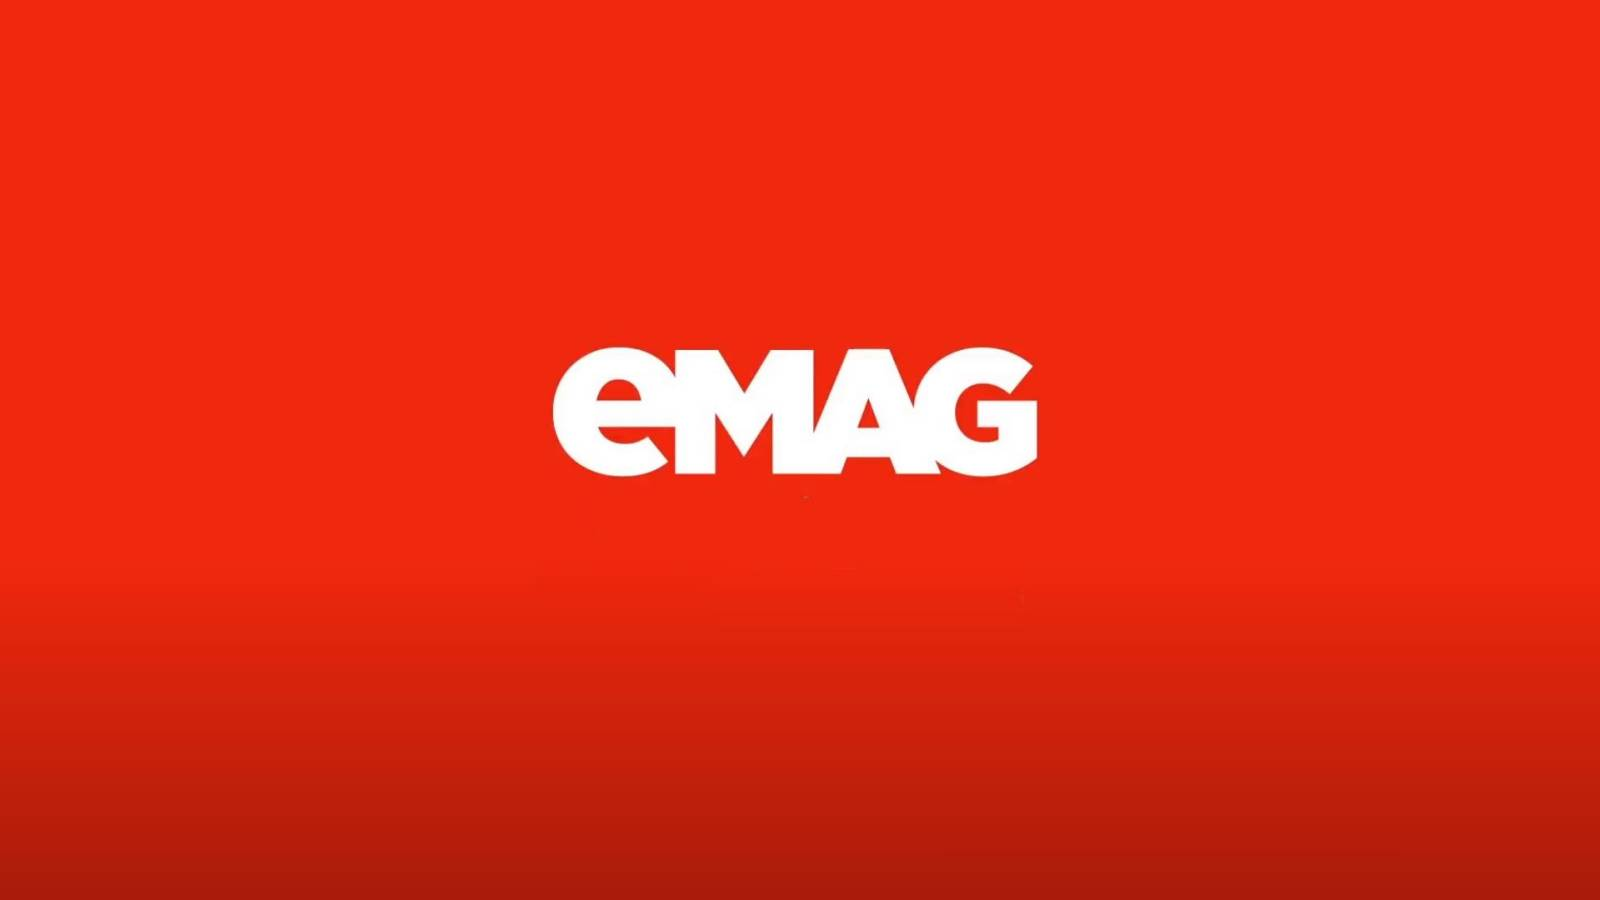 eMAG Online Shopping Days